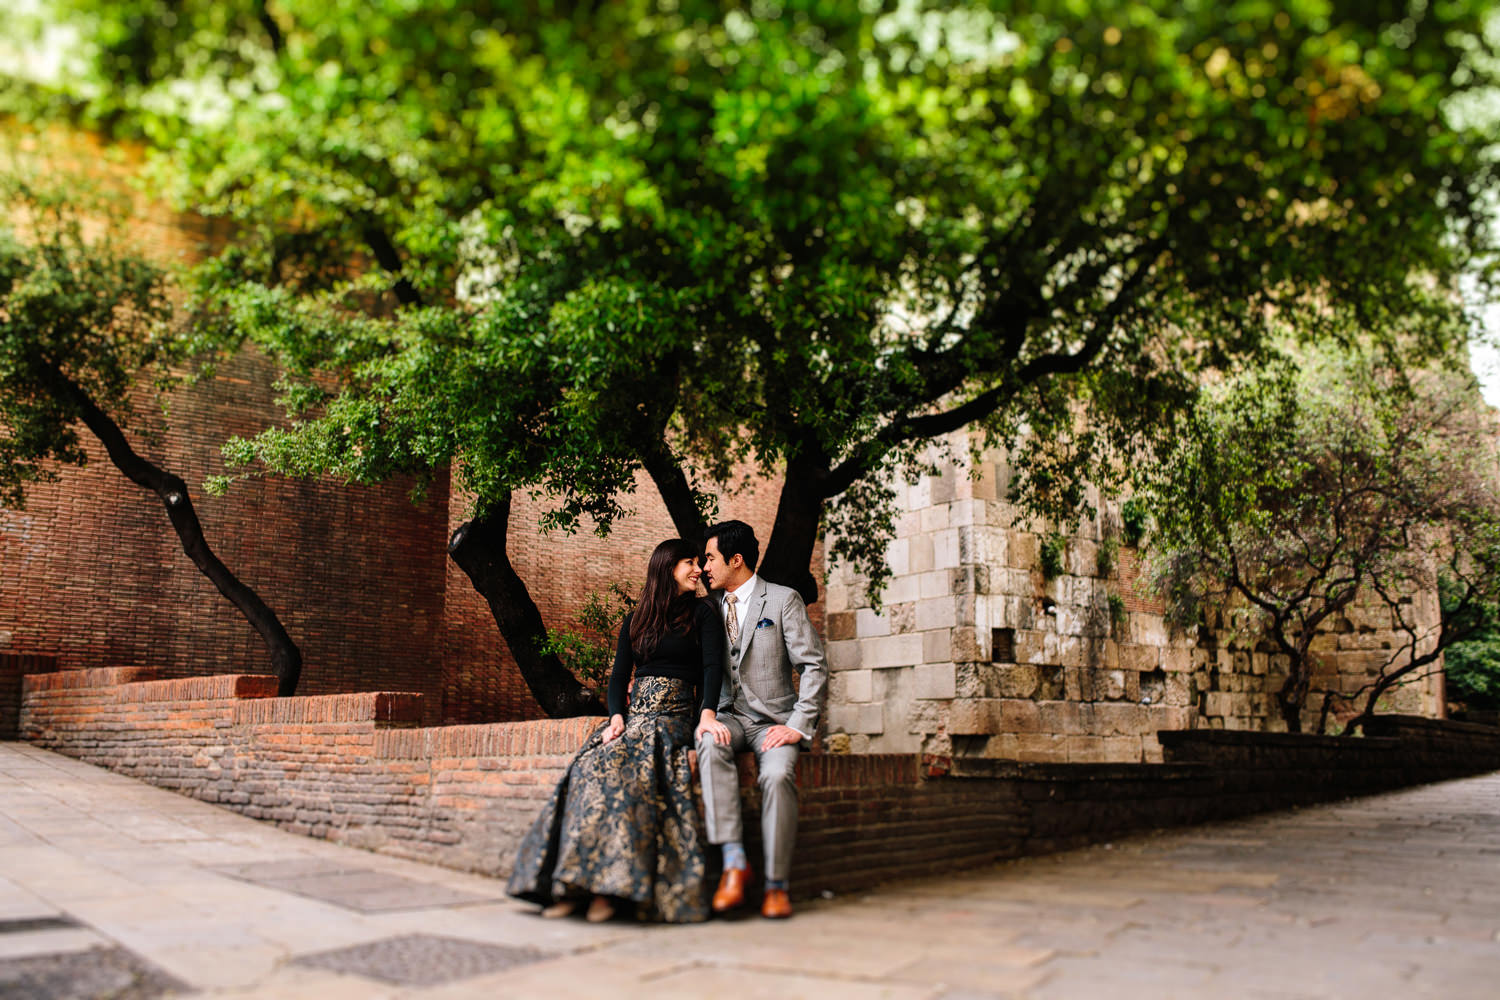 barcelona-wedding-photographer011.jpg